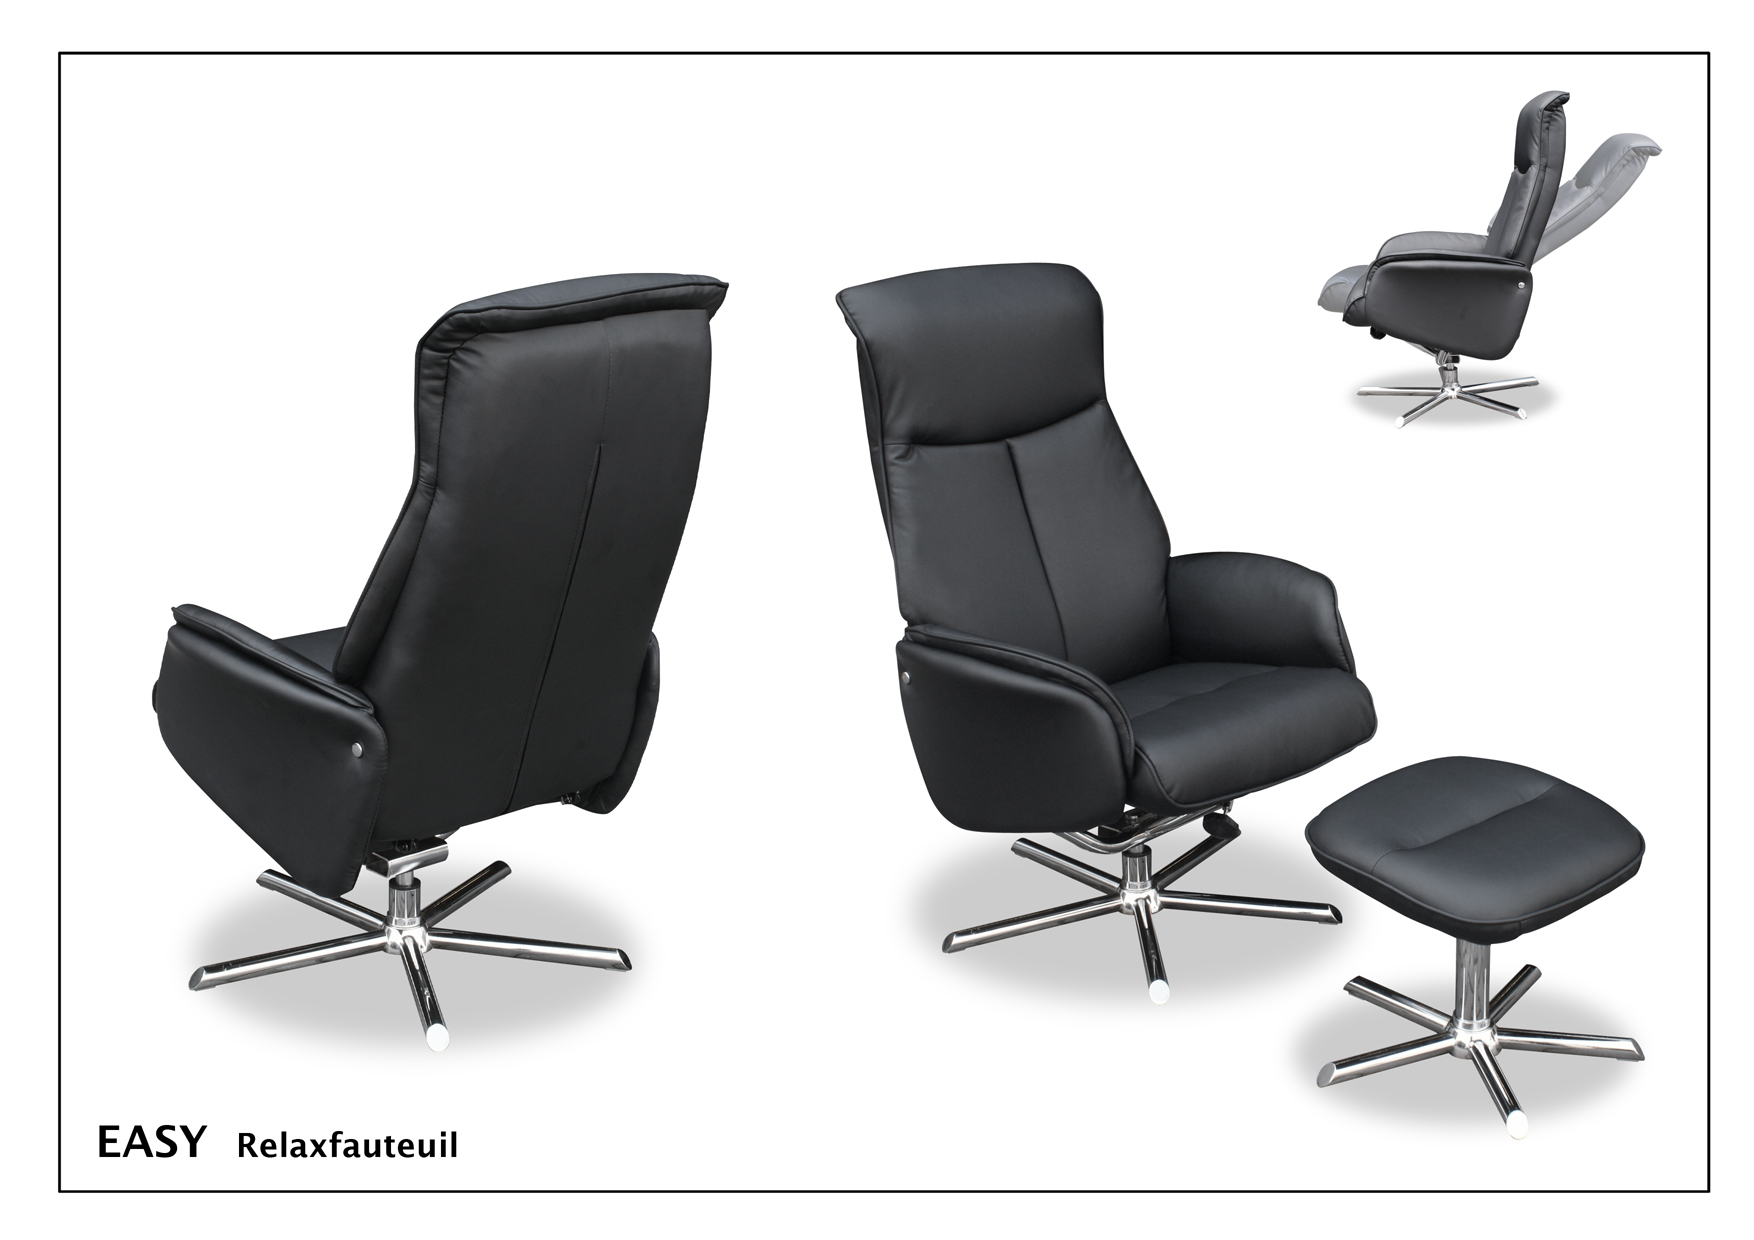 Relax fauteuil Easy